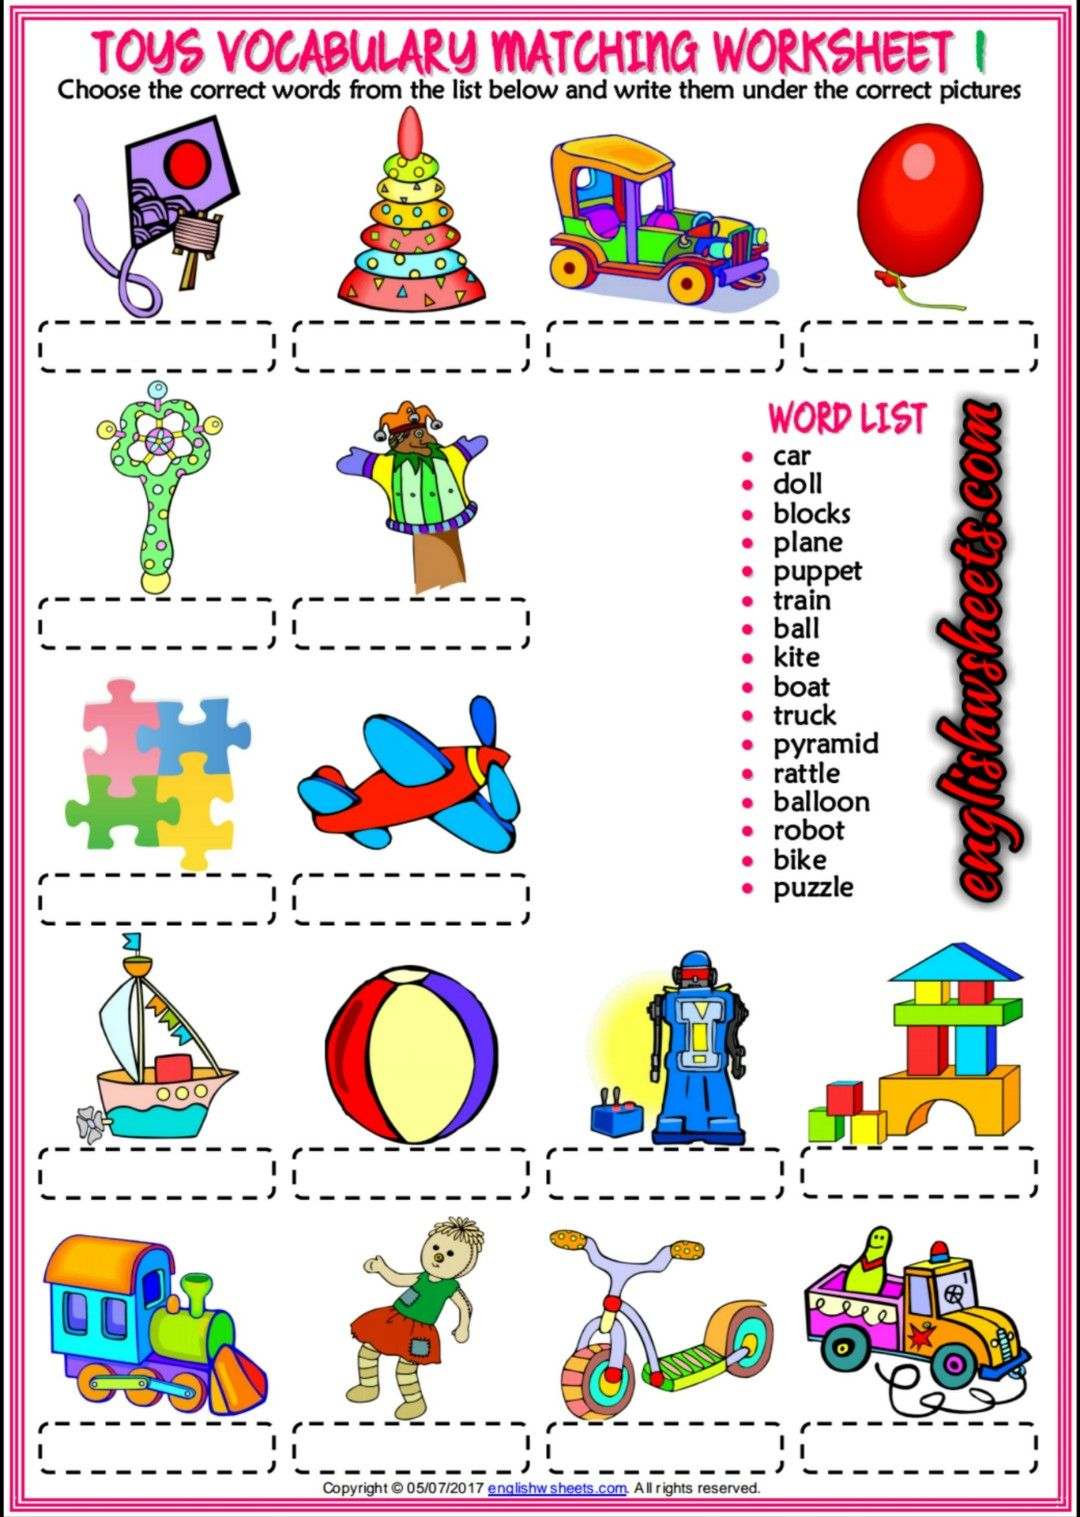 Toys Esl Printable Vocabulary Matching Exercise Worksheets For Kids Toys Esl Printables